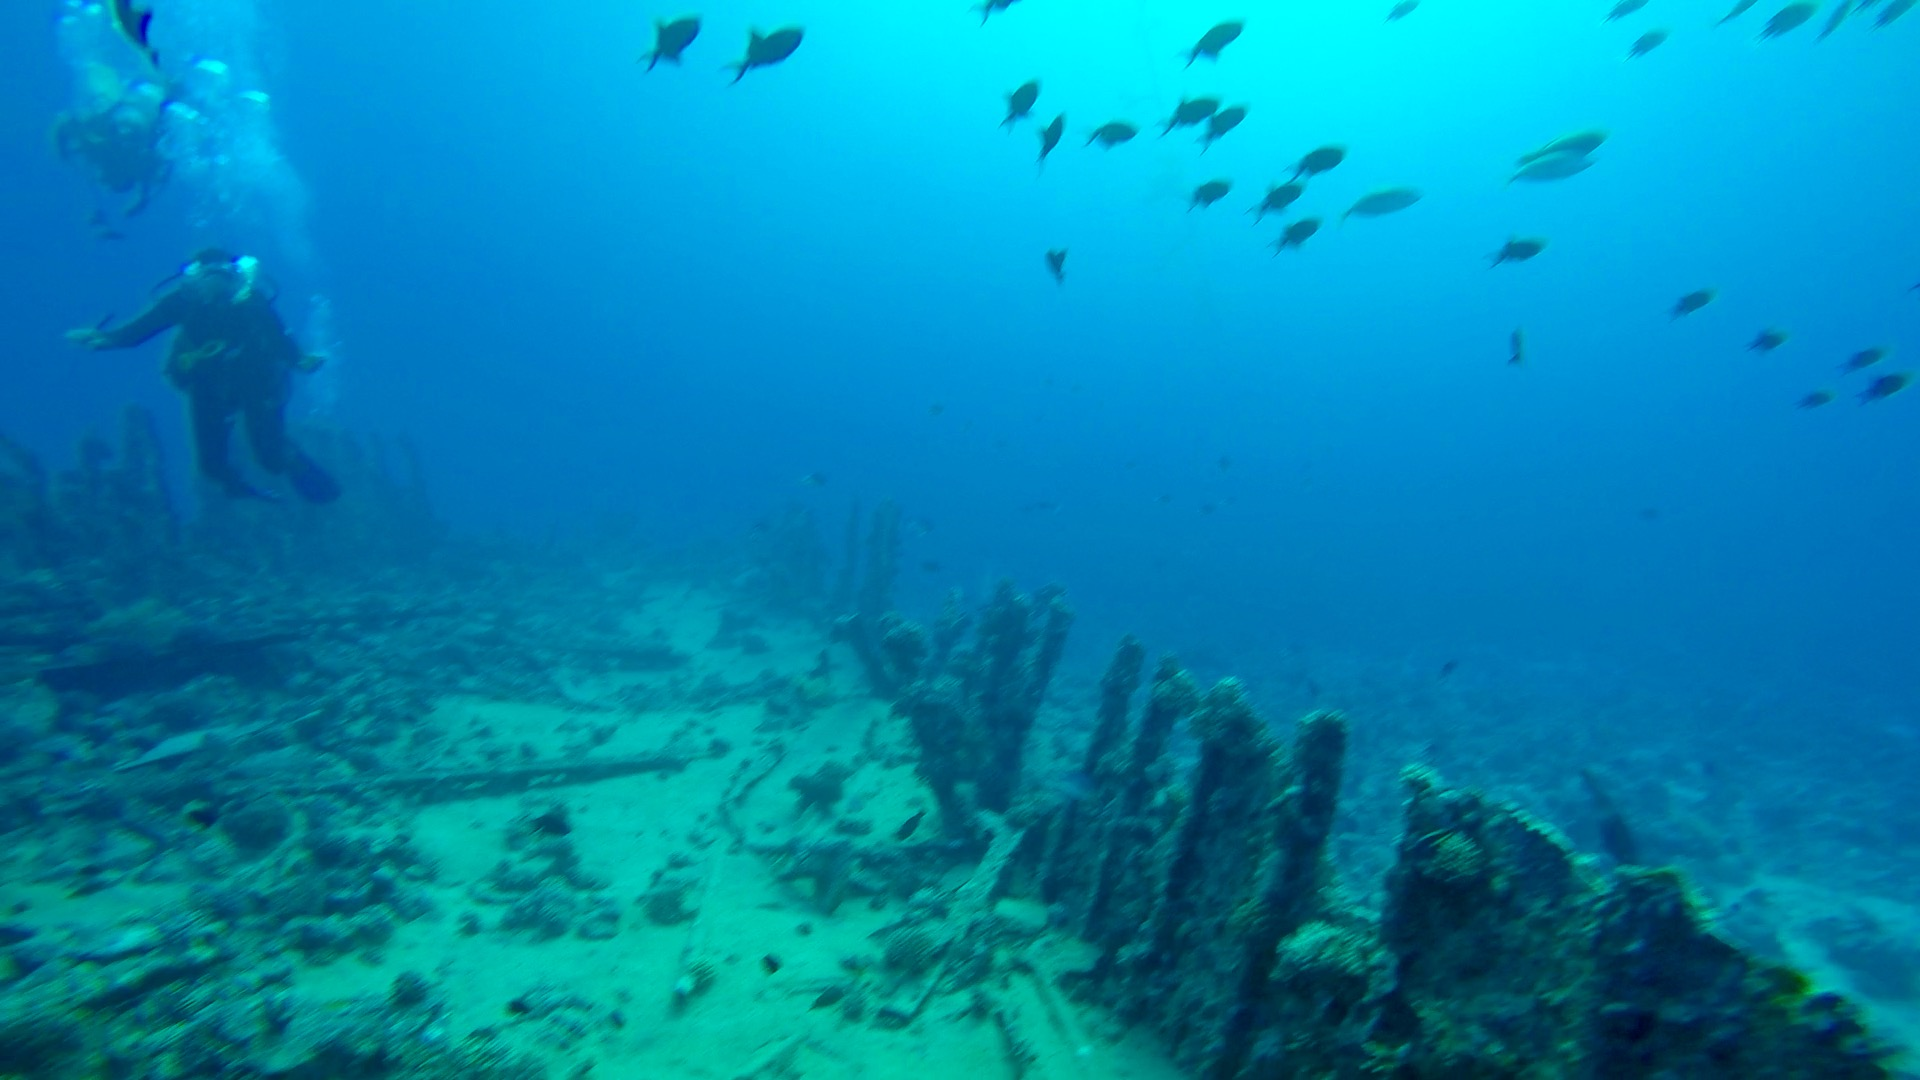 7 Days Sailing And Diving The Red Sea 9 - The Barge